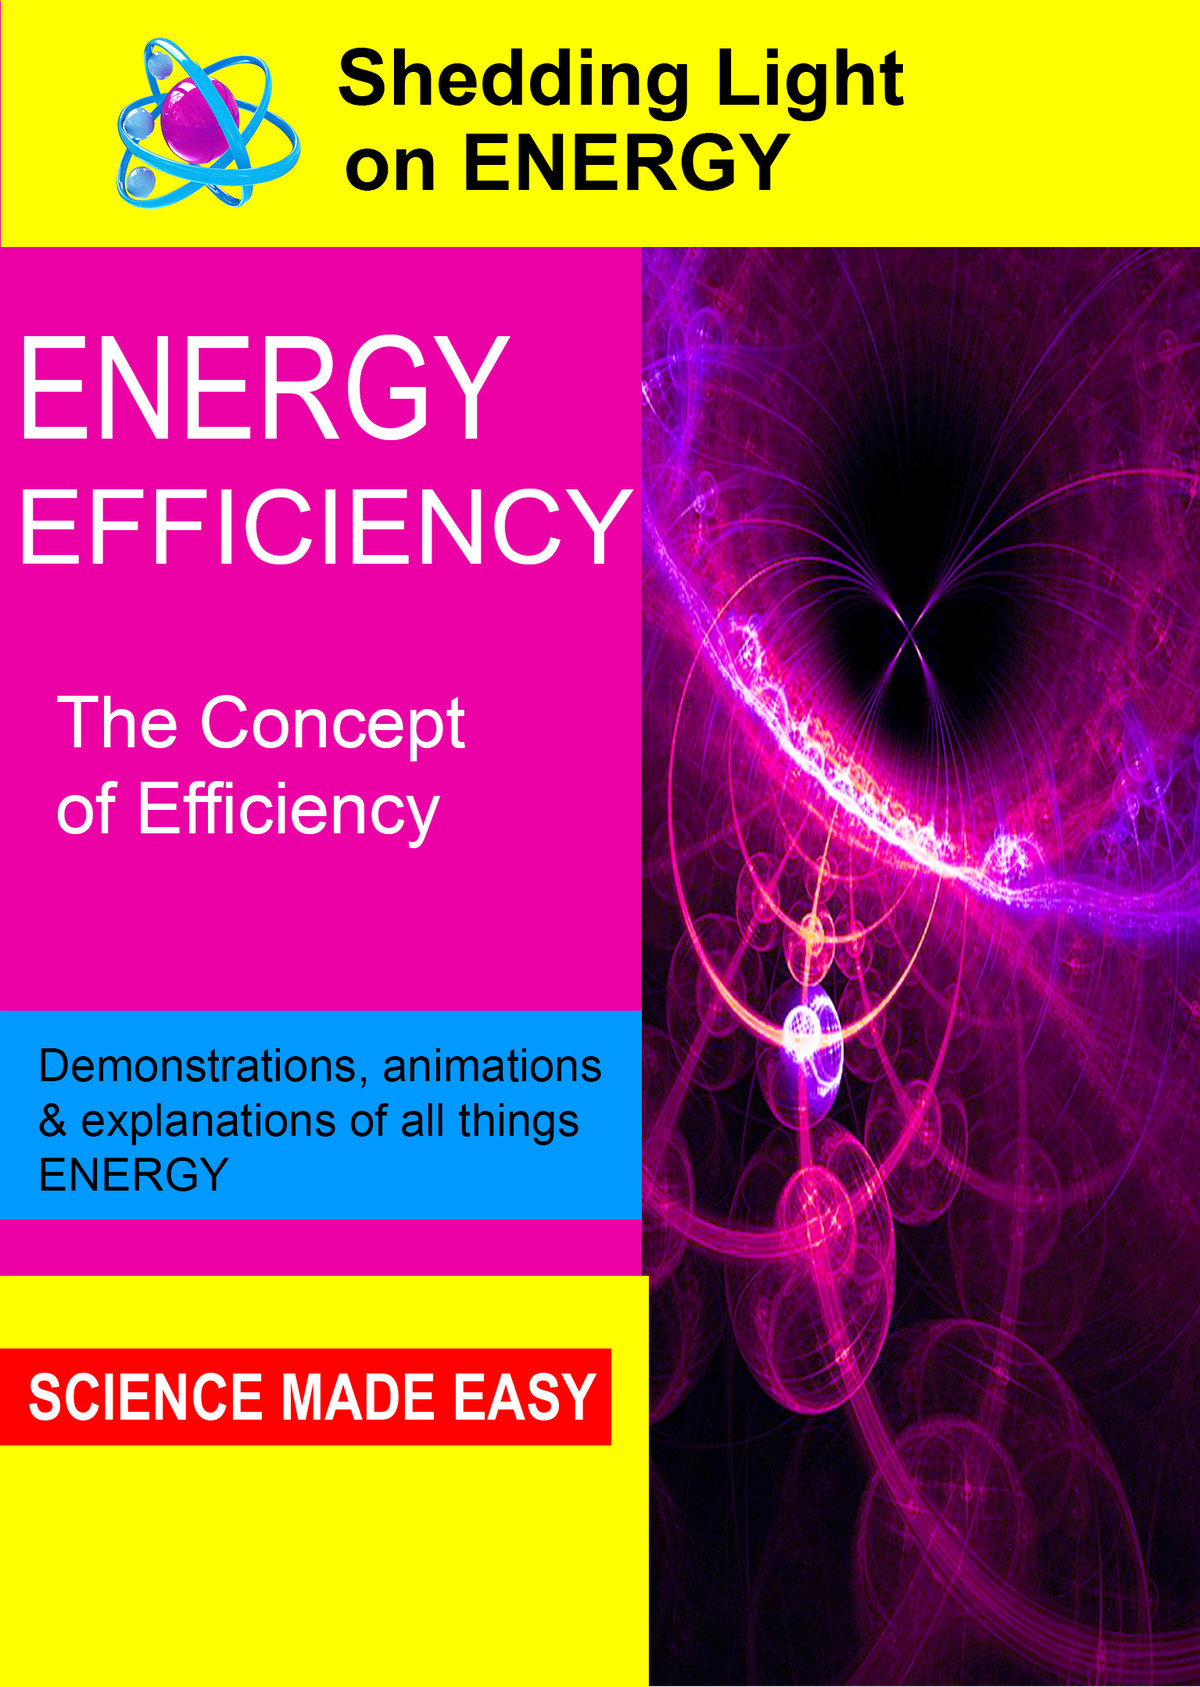 K4811 - Shedding Light on Energy Energy Efficiency